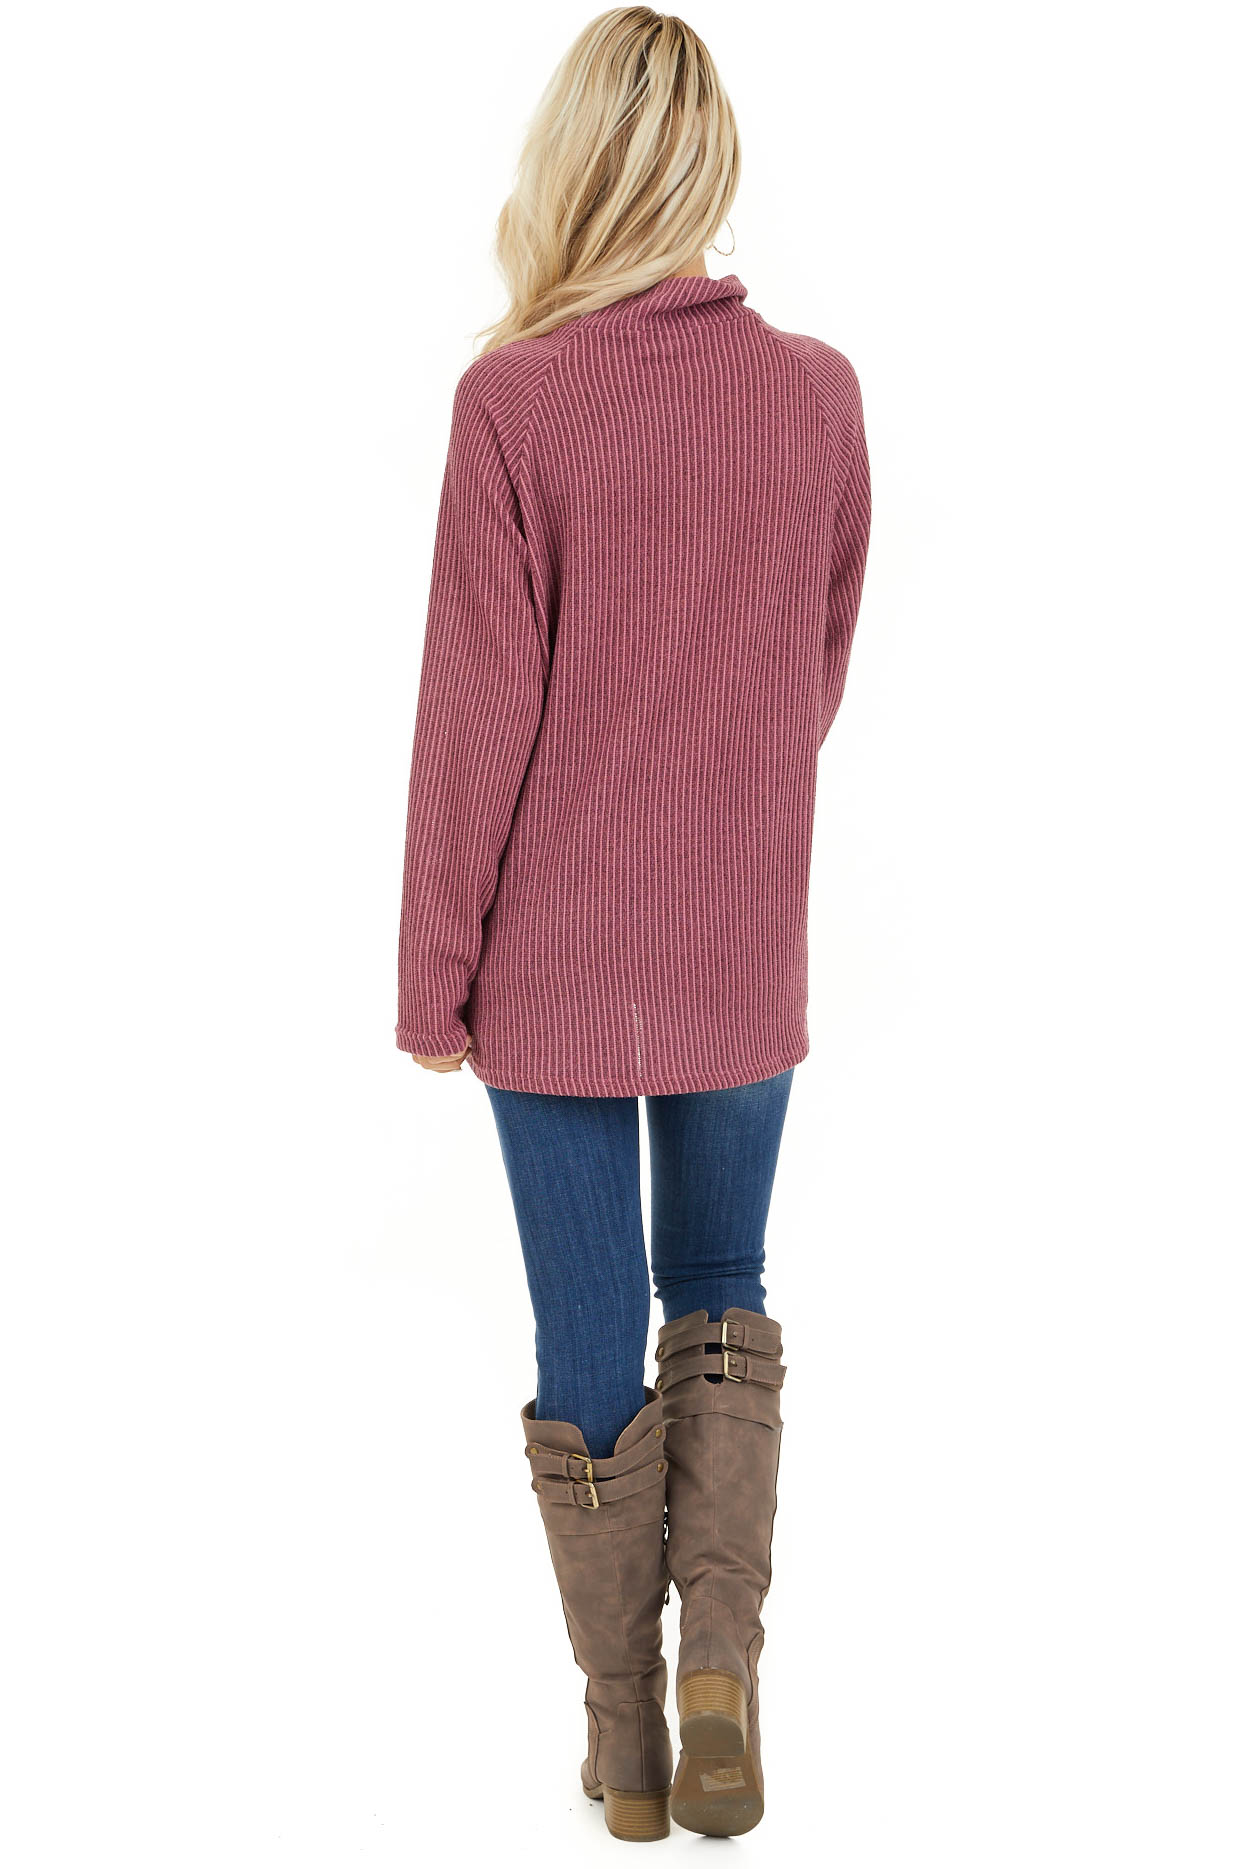 Dusty Mauve Ribbed Knit Mock Neck Top with Button Detail back full body